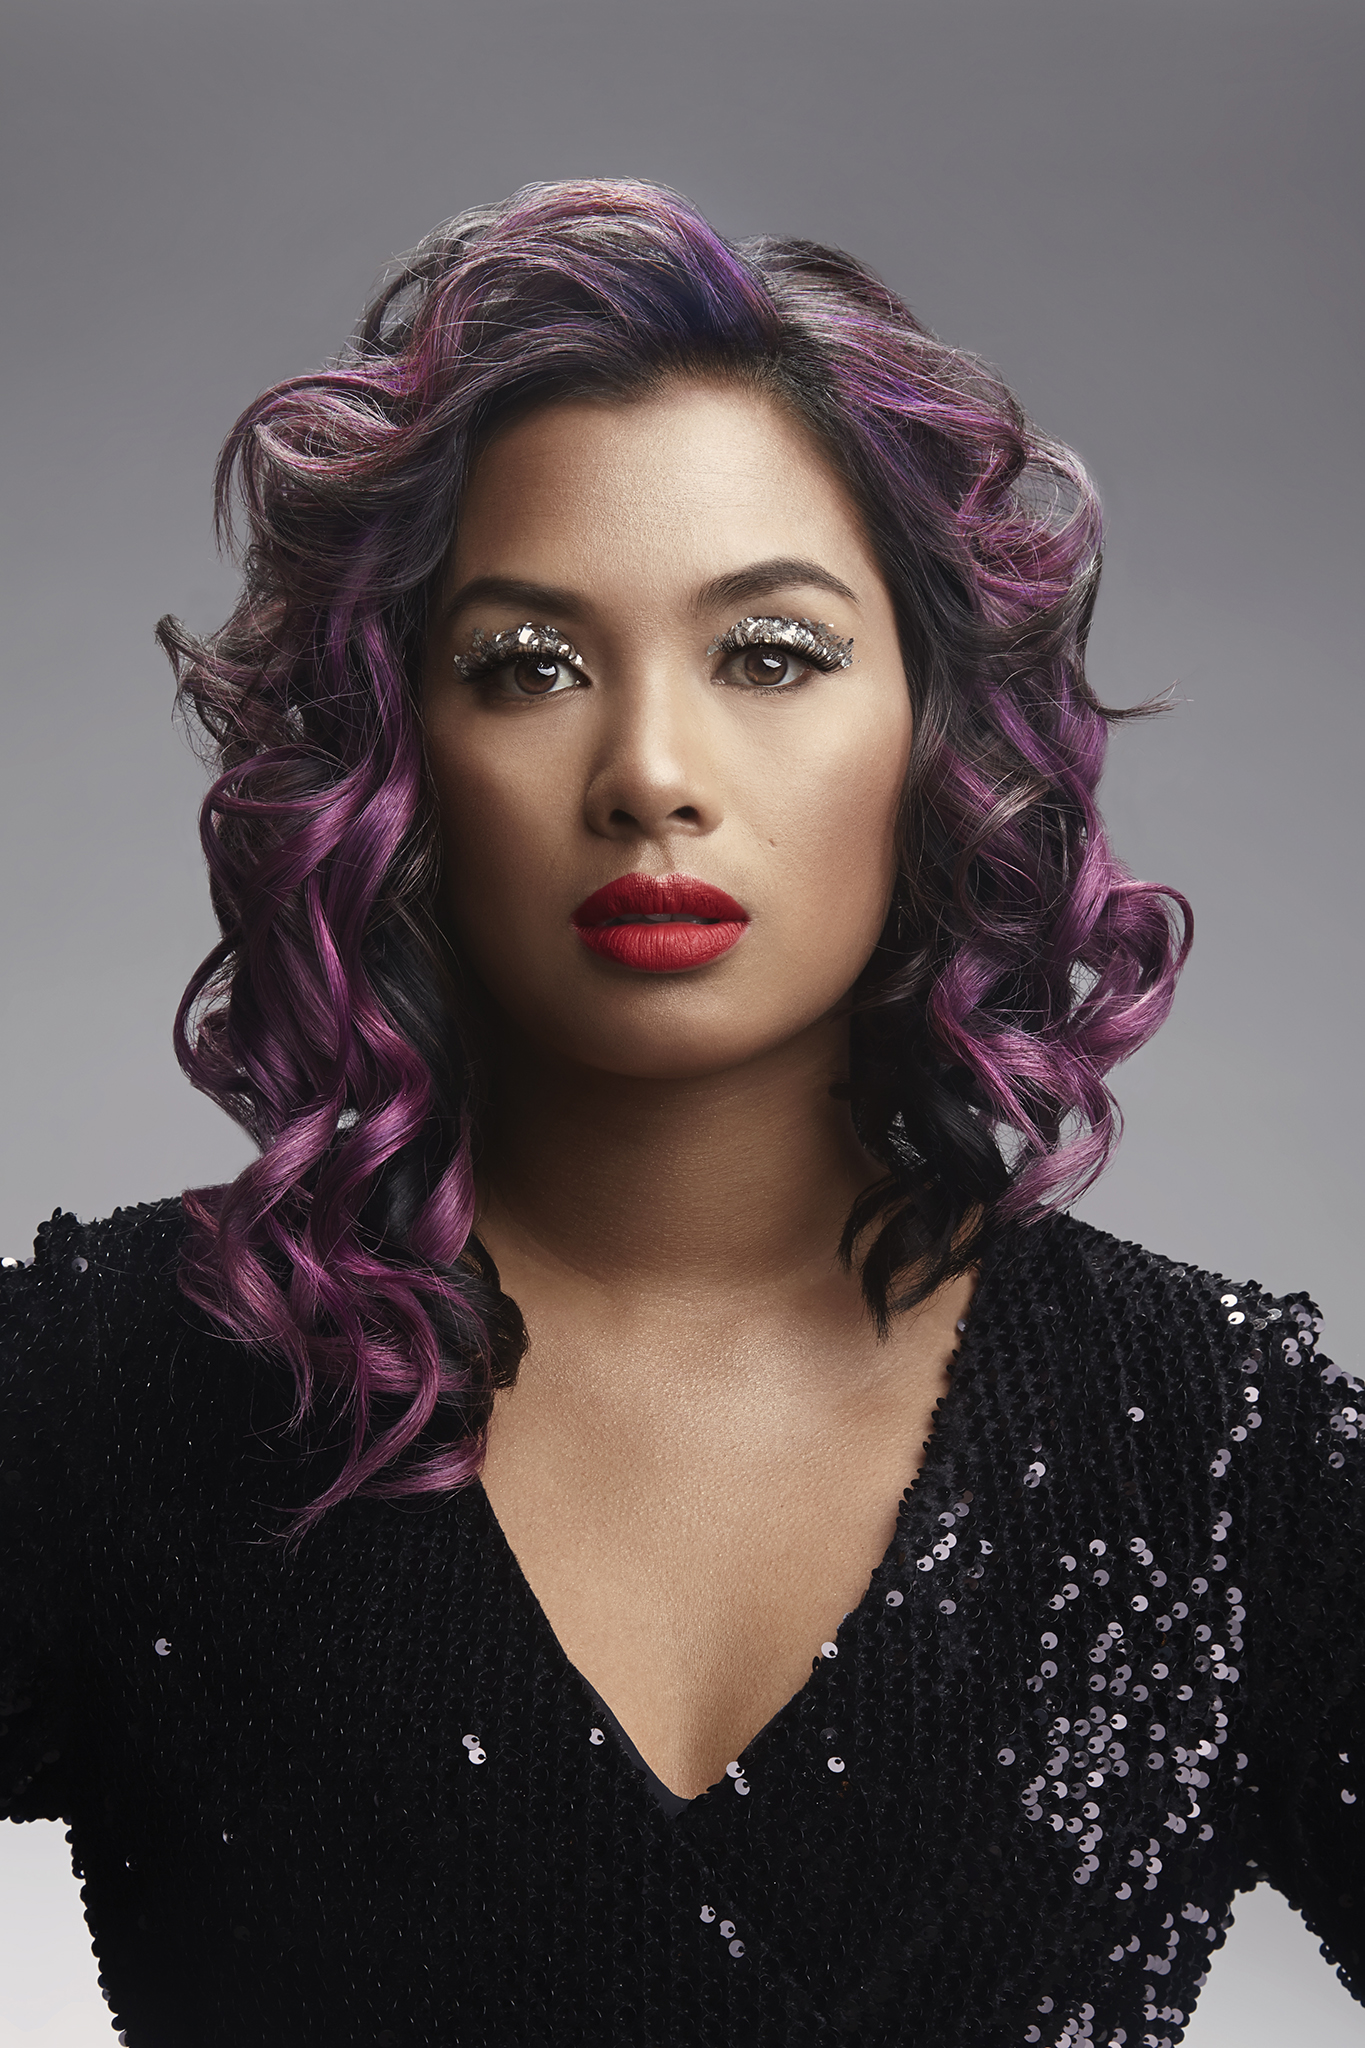 Fall-Hair-Collection-Shoot-for-Studio-Alf-Frisør-by-Dana-Cole-Photography-purple-hair-wavy-hair-style-red-lipstick-advertising.jpg